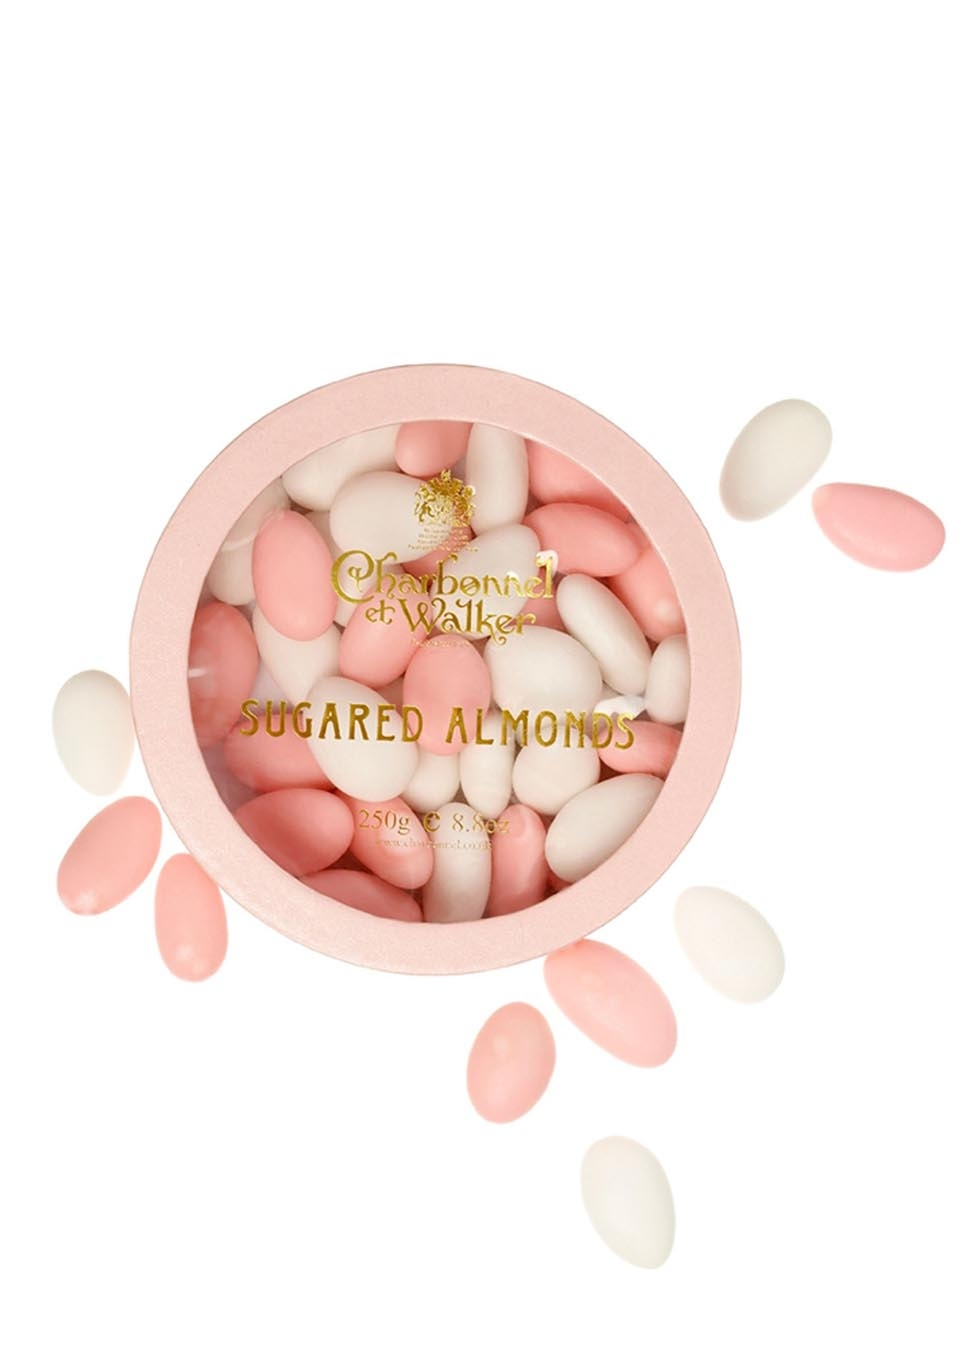 For her - Charbonnel et Walker sugared almonds, £10.95